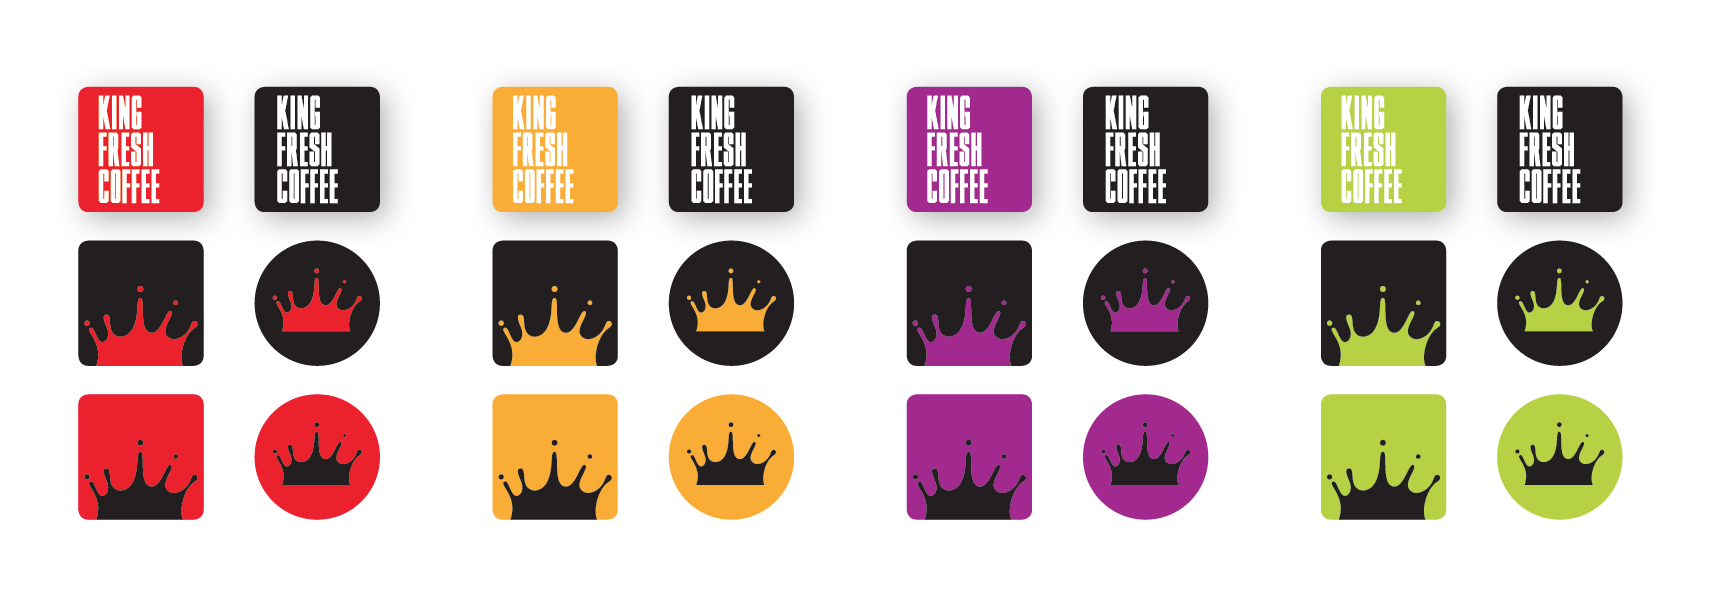 King Fresh Coffee 4